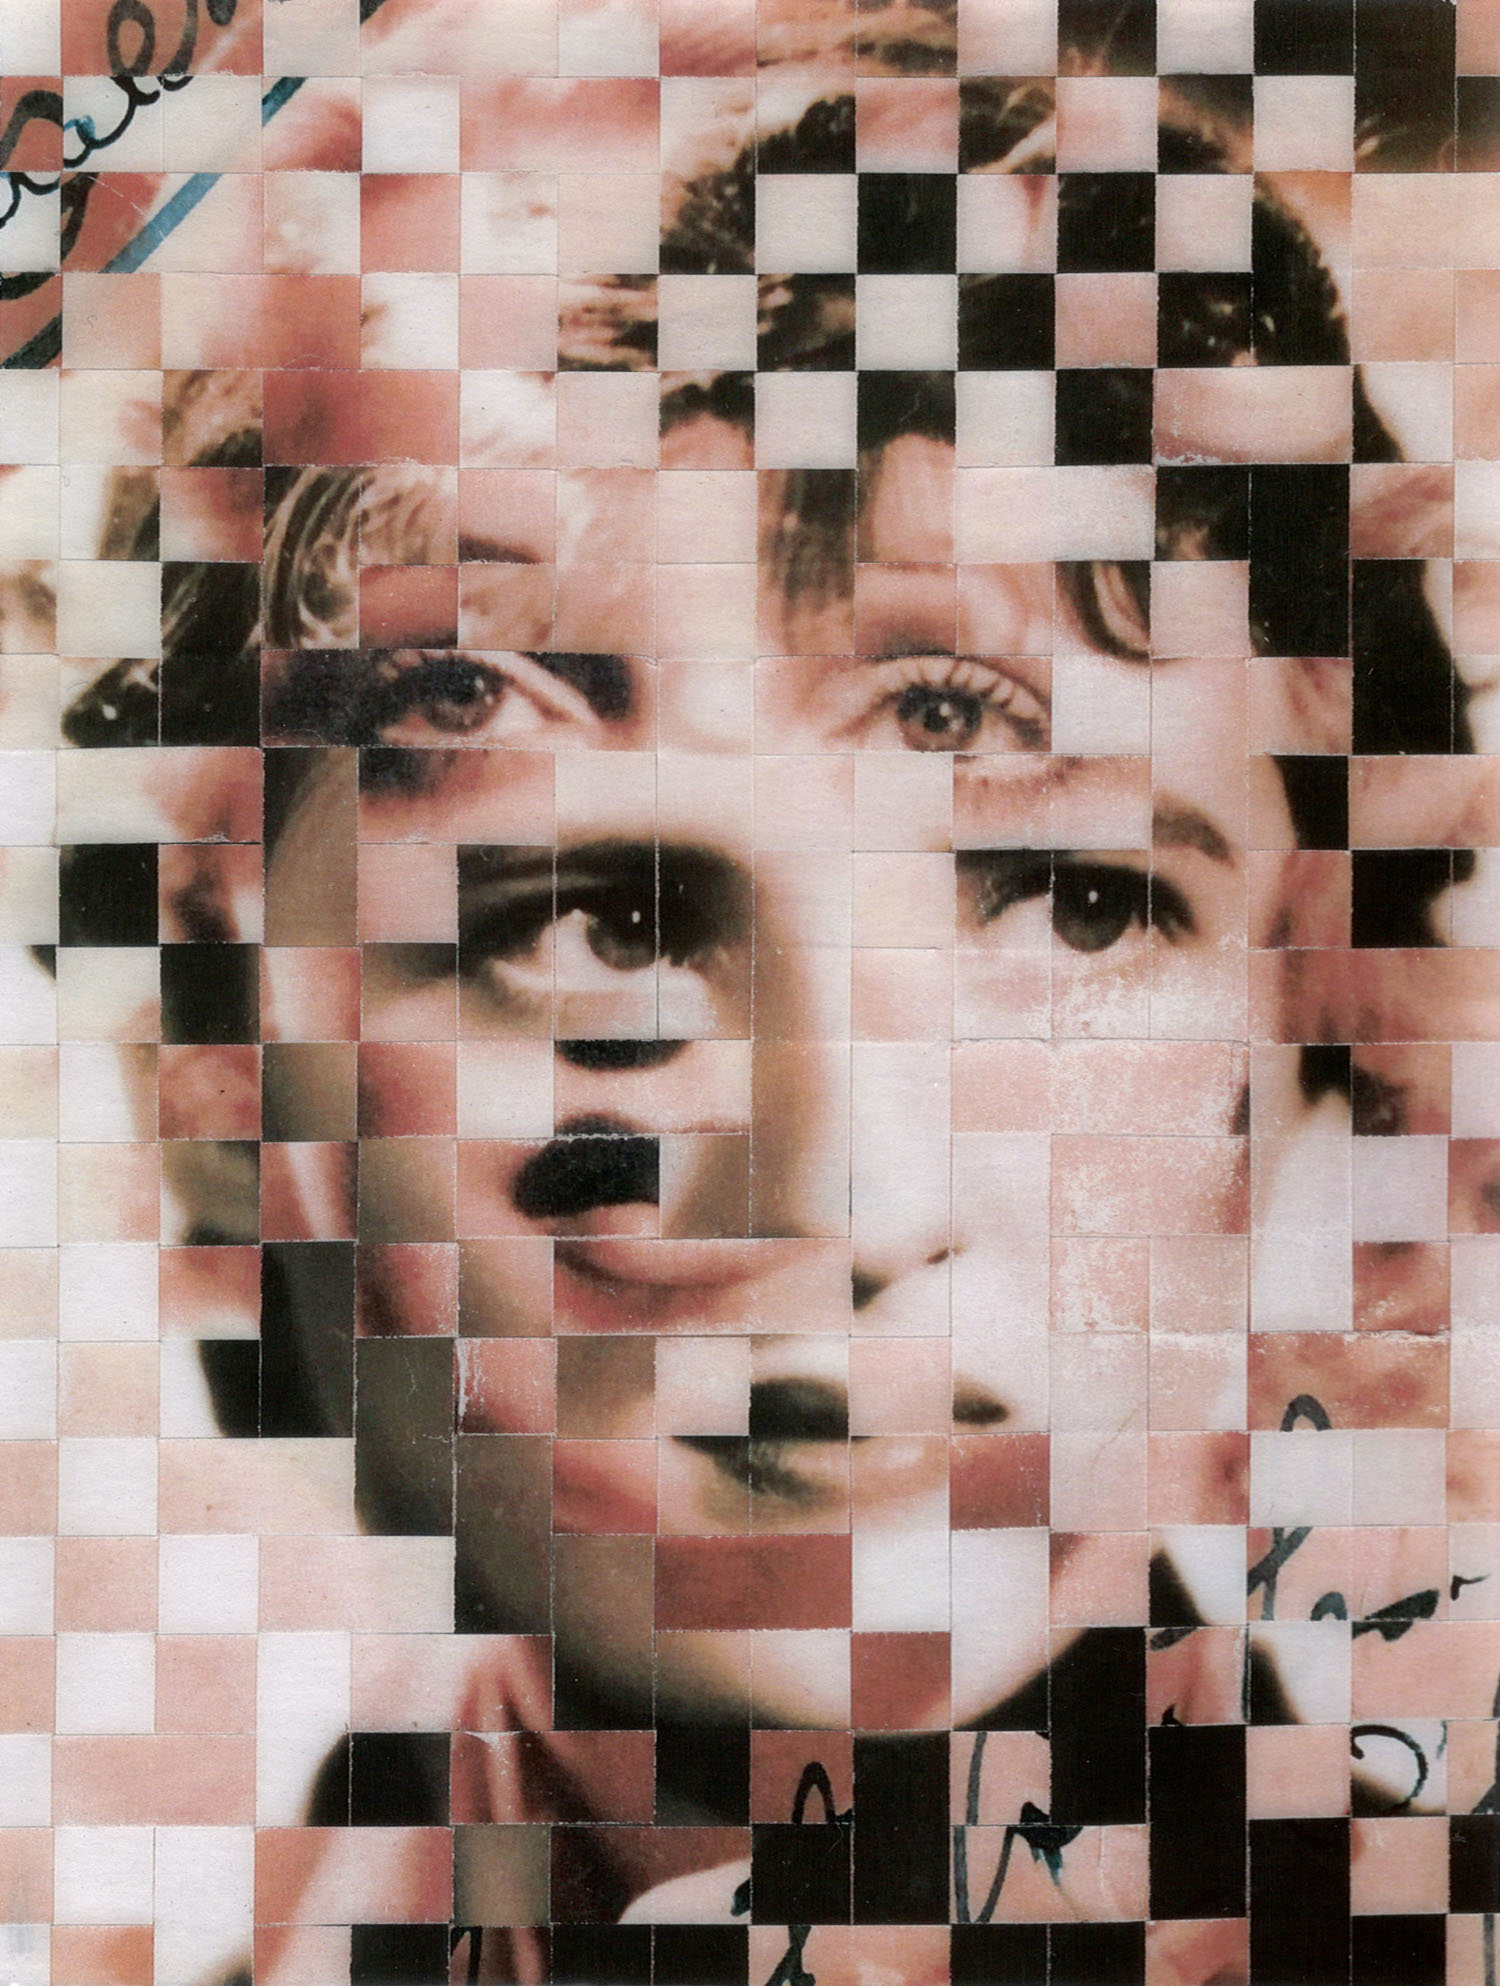 10,000 FACES XII (2018)